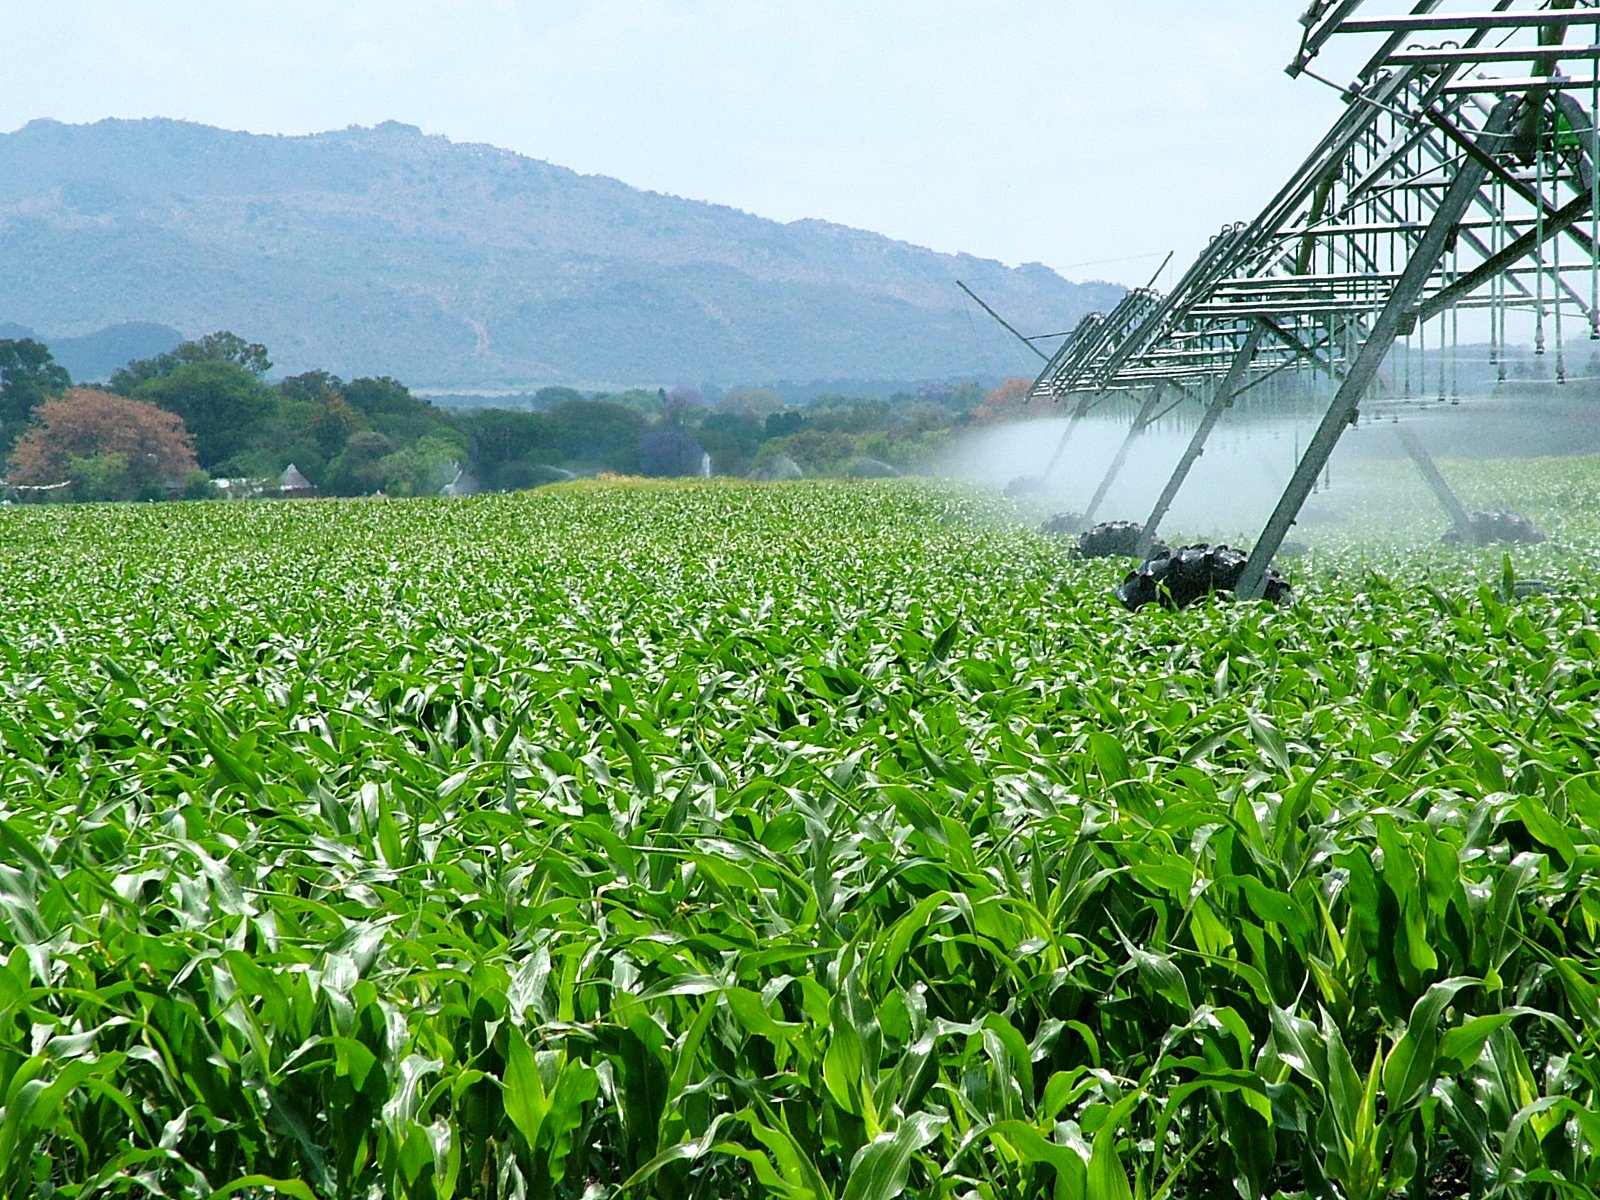 corn field being irrigated